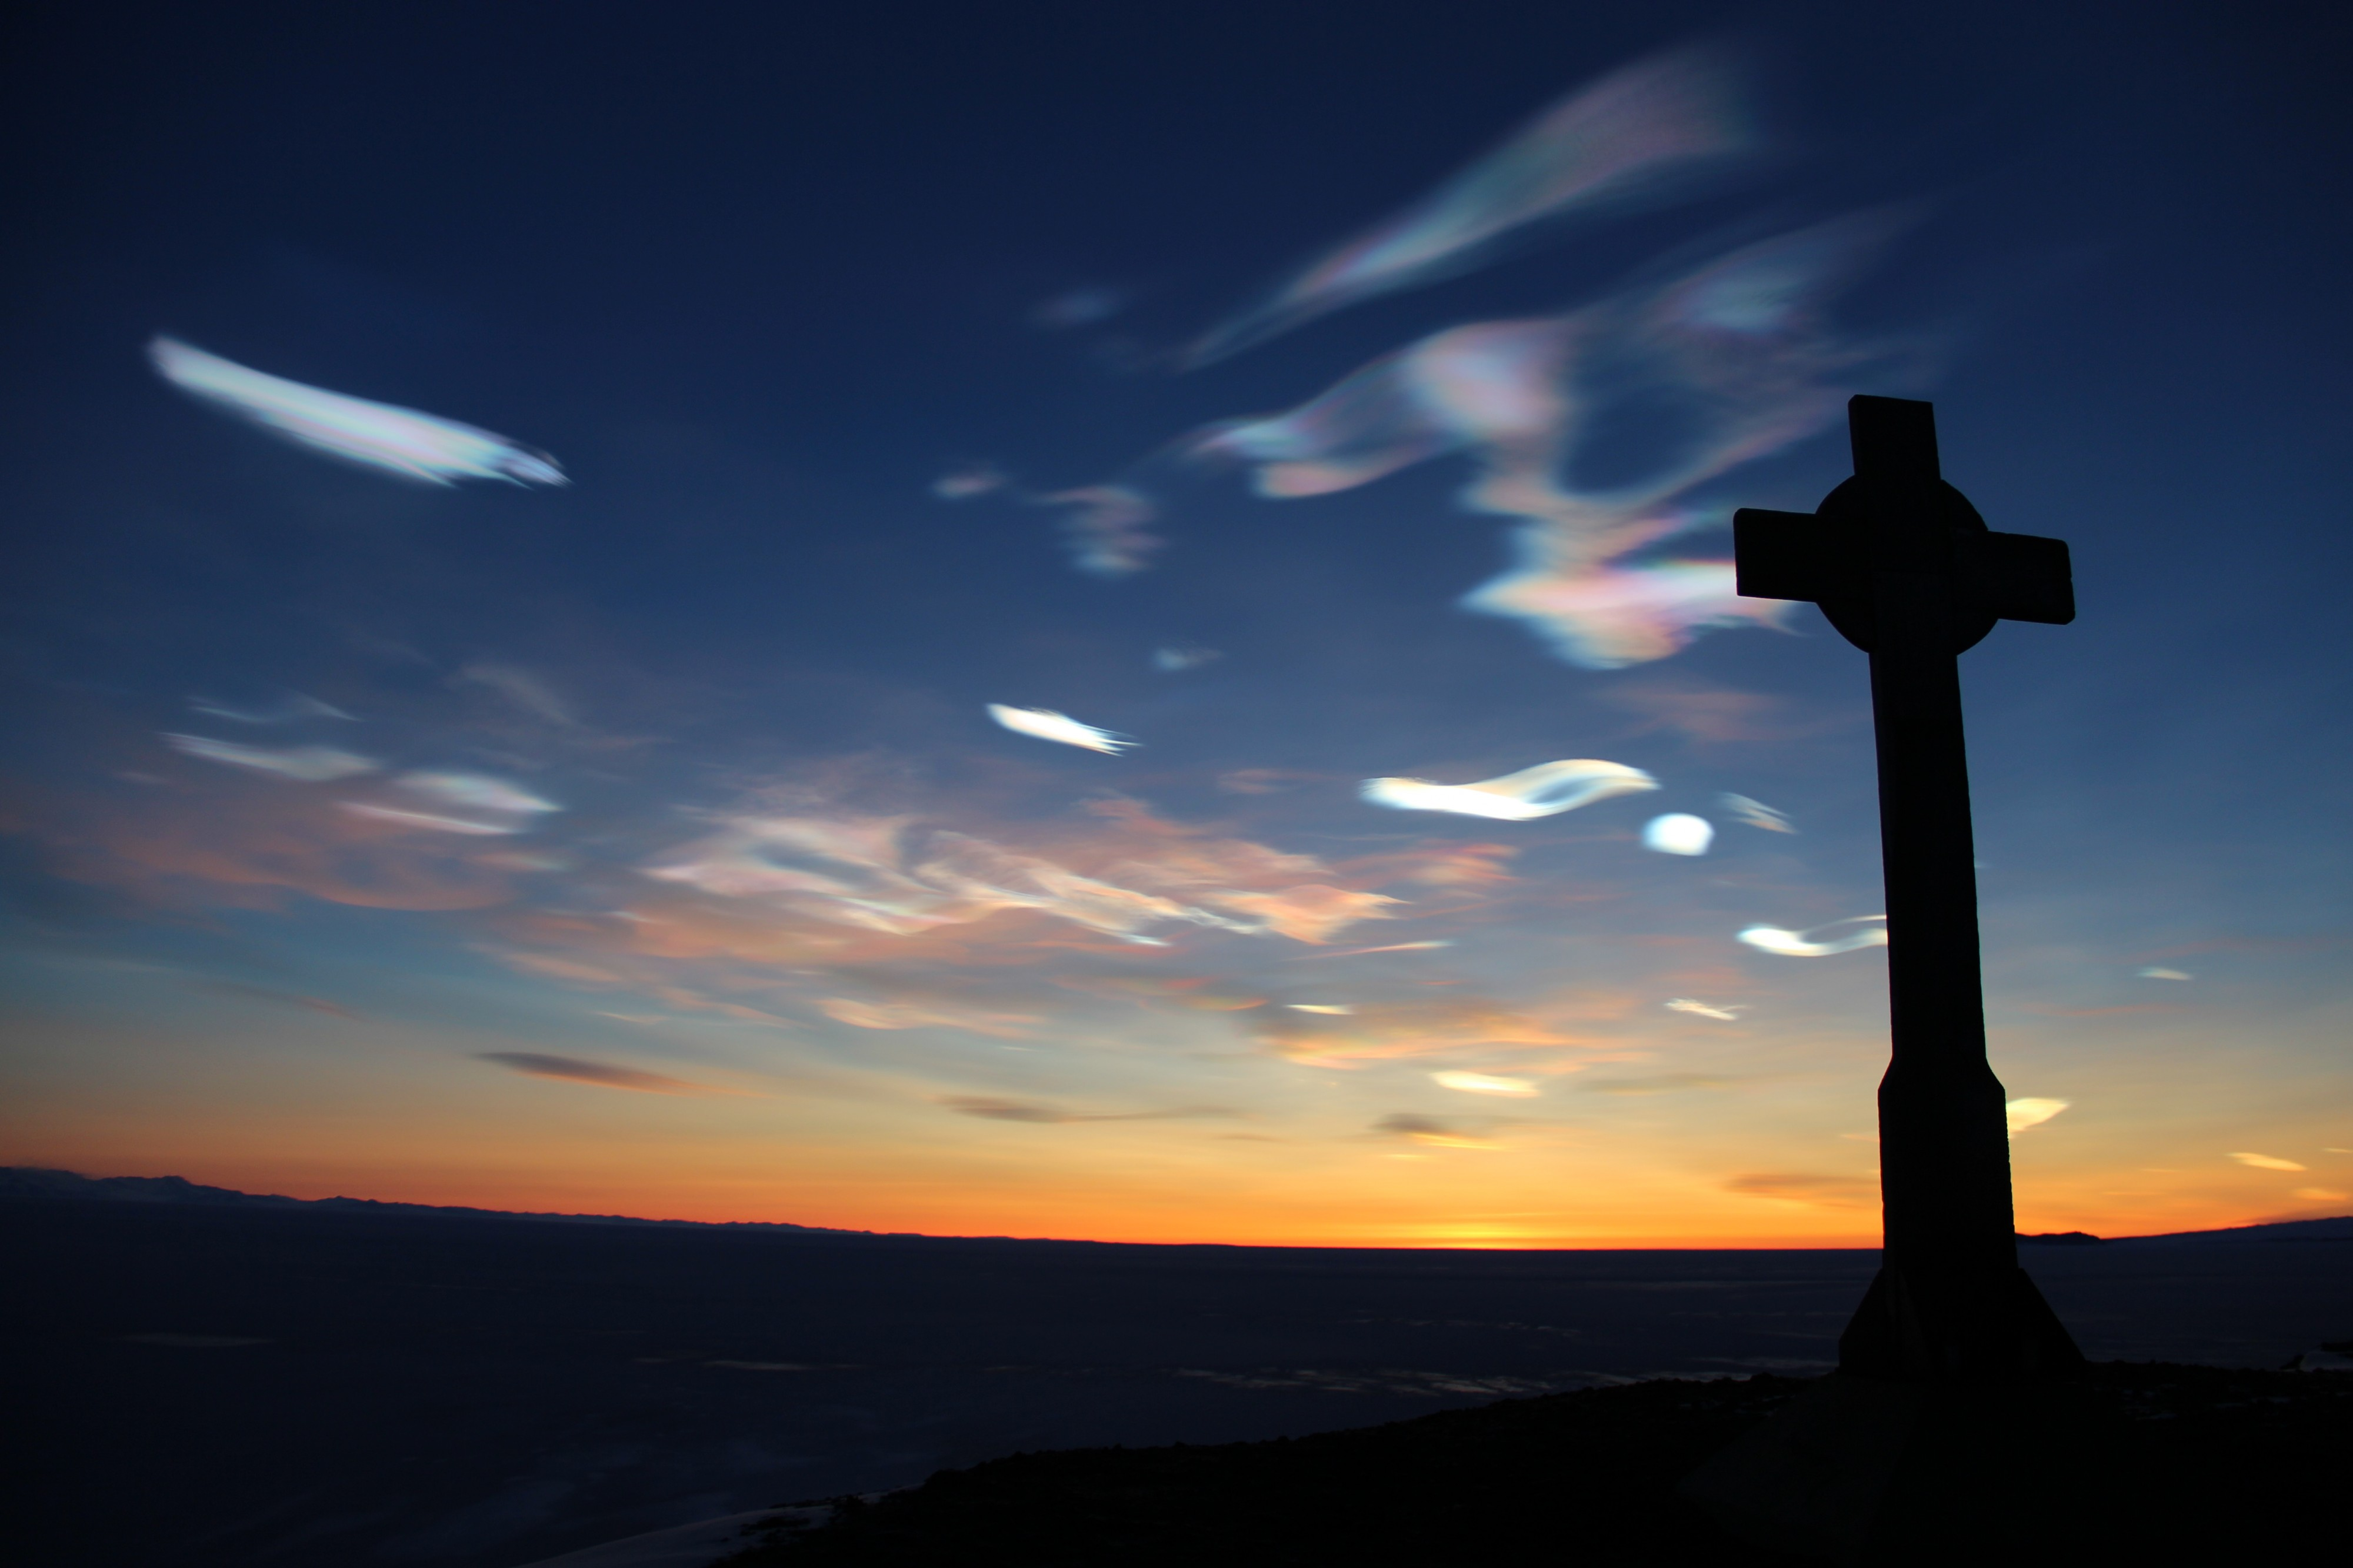 HSM-19 George Vince's Cross with nacreous clouds